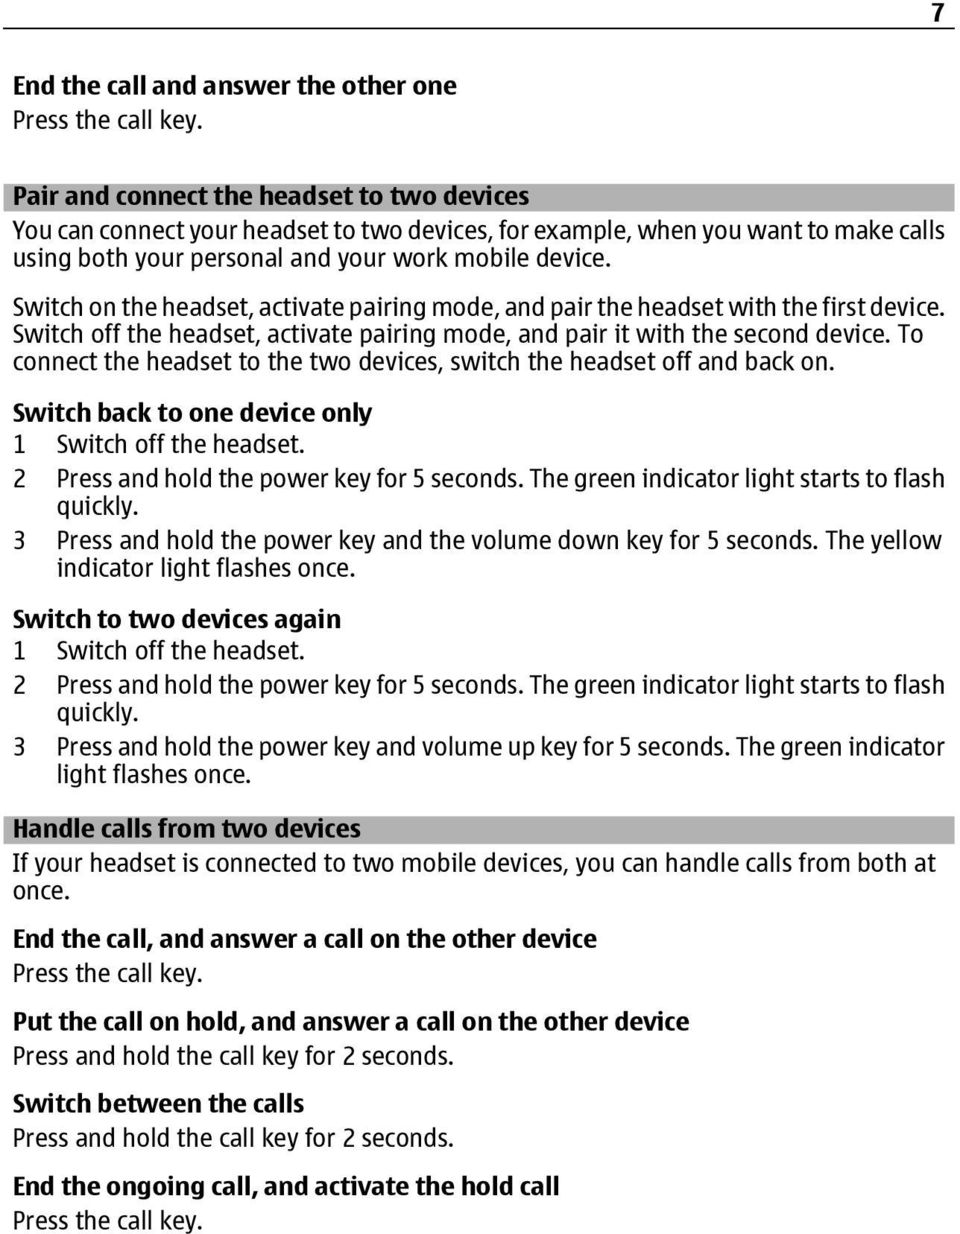 Switch on the headset, activate pairing mode, and pair the headset with the first device. Switch off the headset, activate pairing mode, and pair it with the second device.